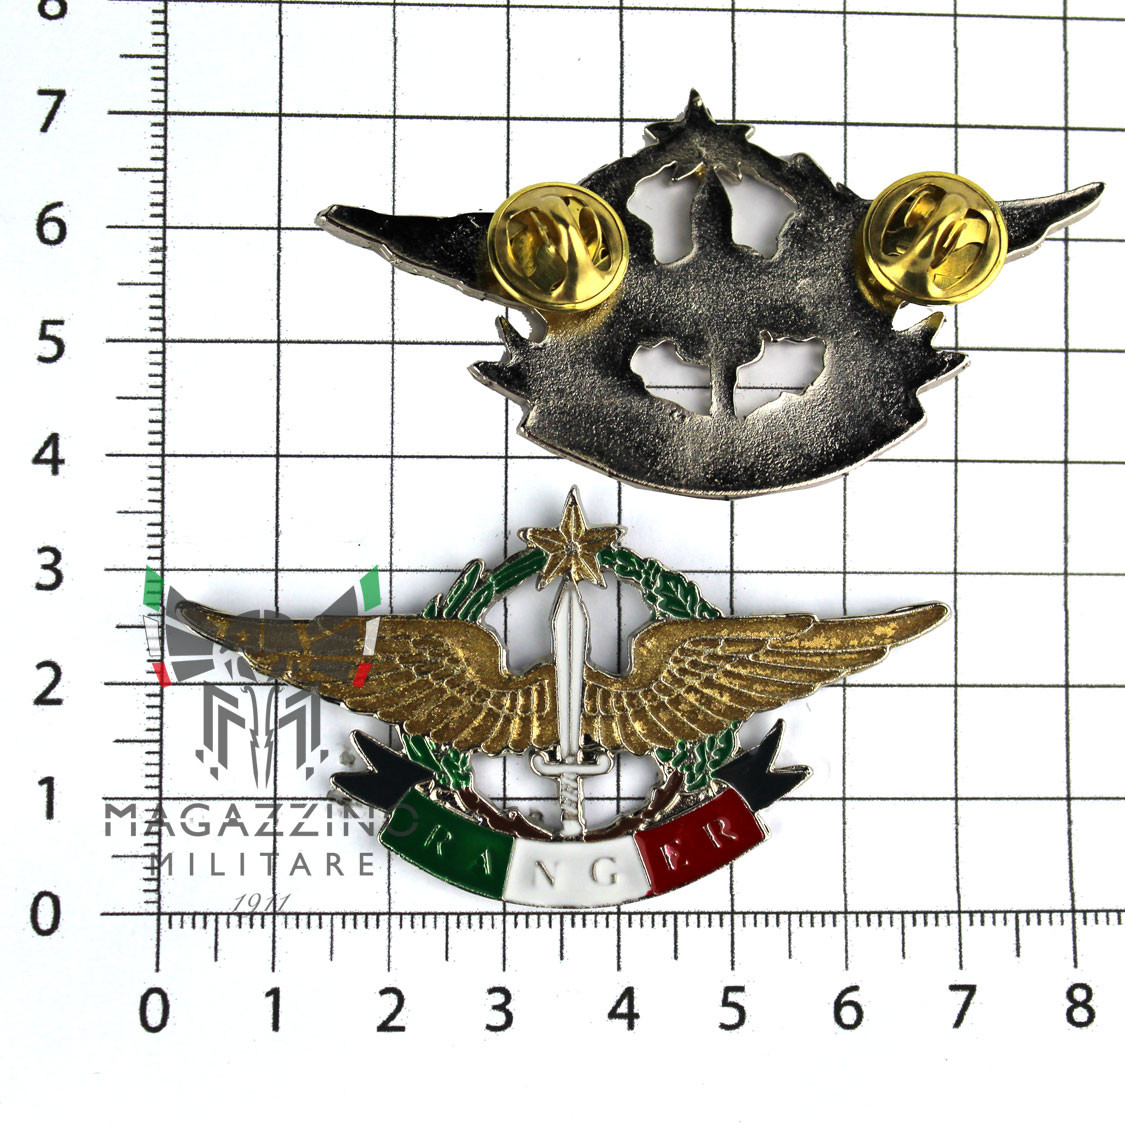 PINS MILITARY Insigna PIN OF PARATROOPERS 4th REGIMENT ALPINI RANGER